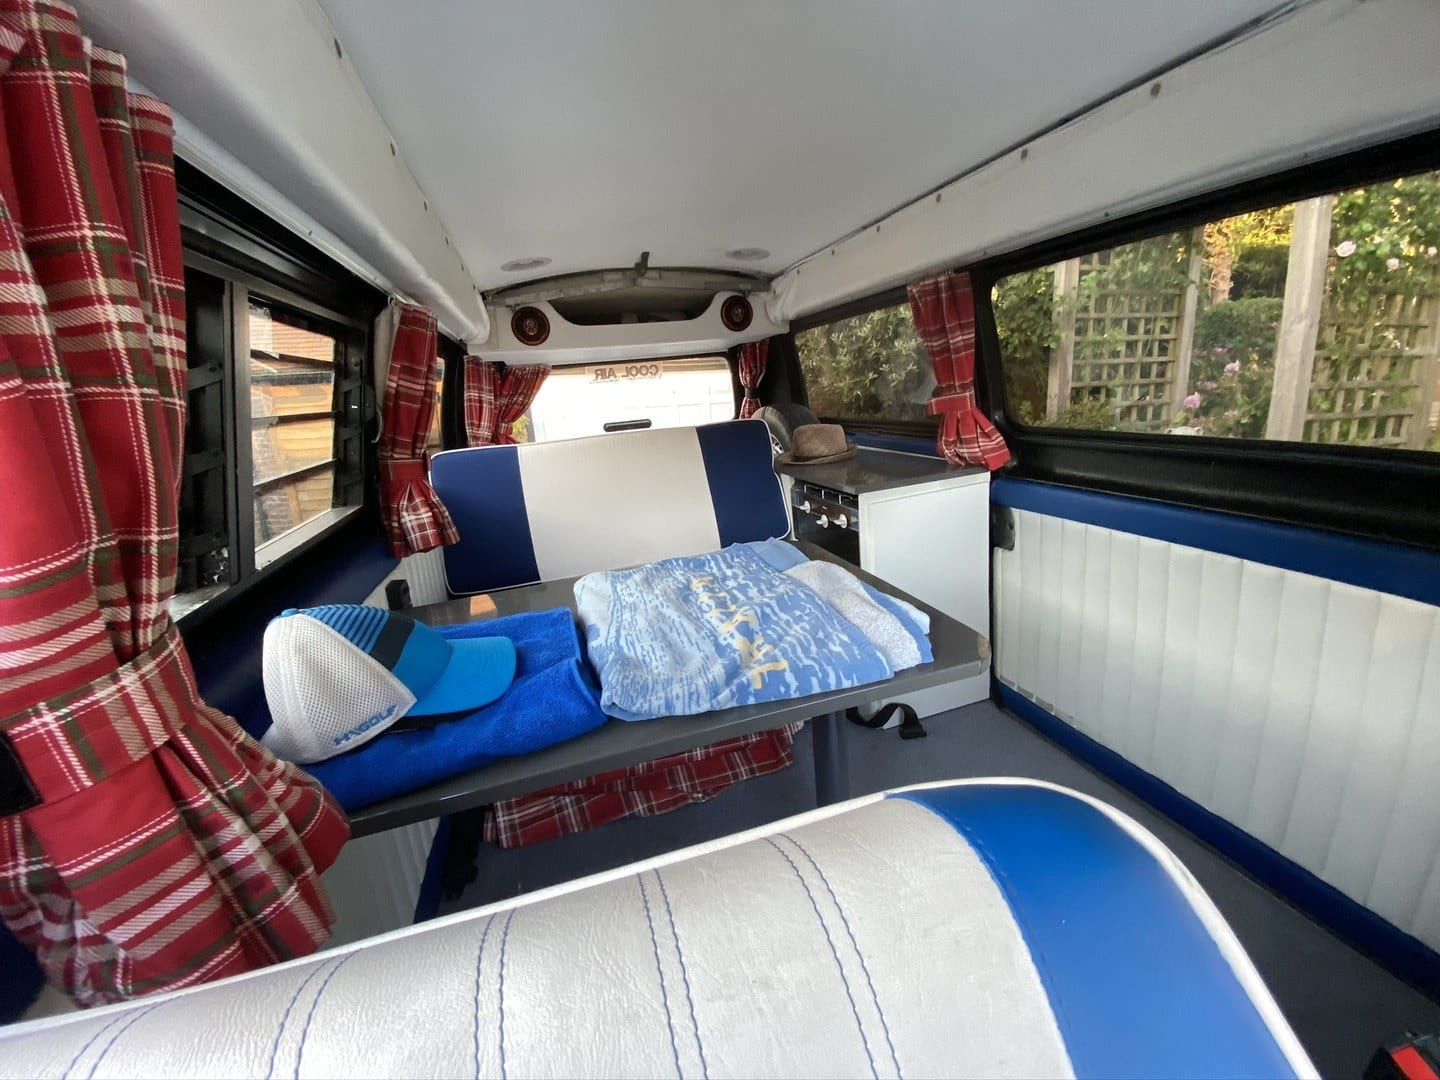 Sleep in a V W Campervan with Short Stay Homes